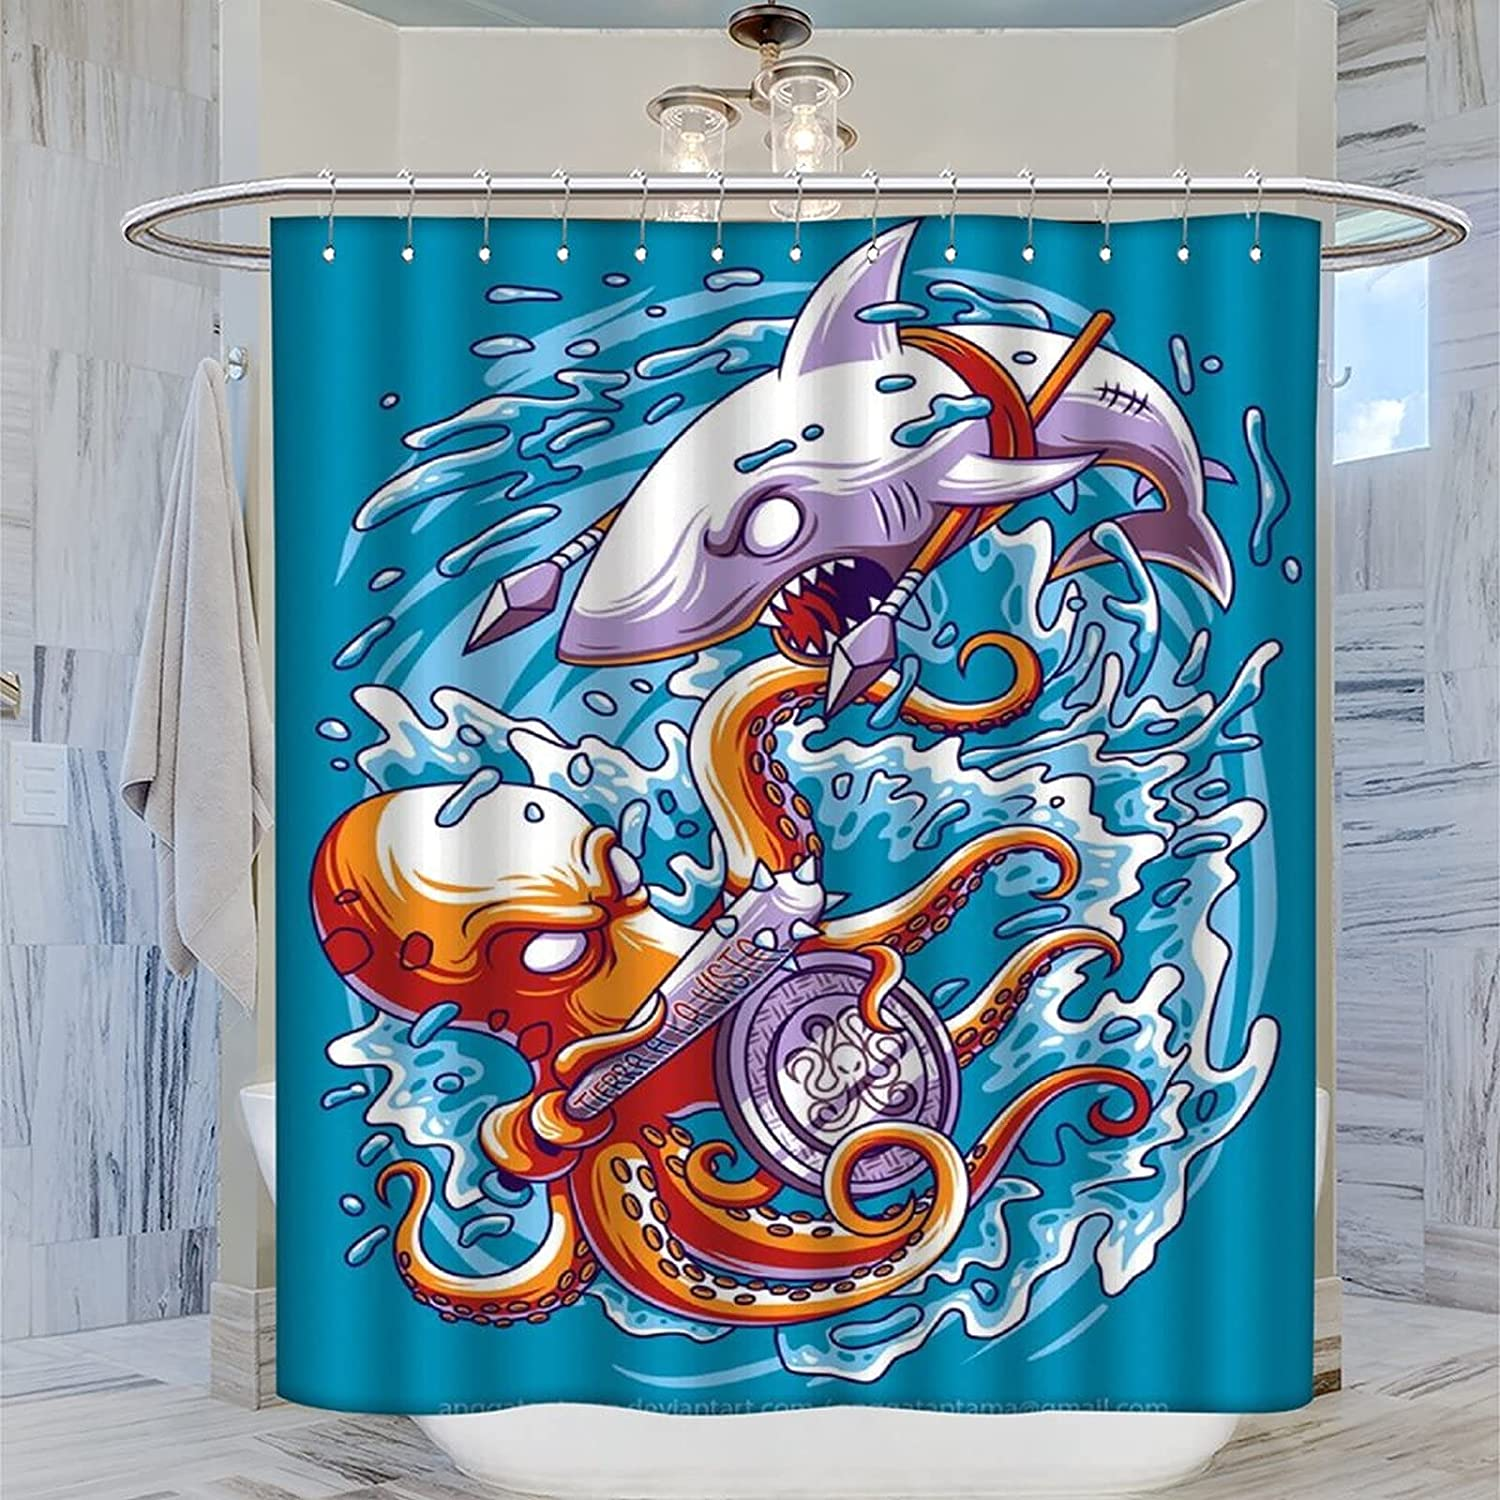 DRAGON VINES Animated Shower Curtain Octopus and New life Challenge the lowest price Colorful Shark